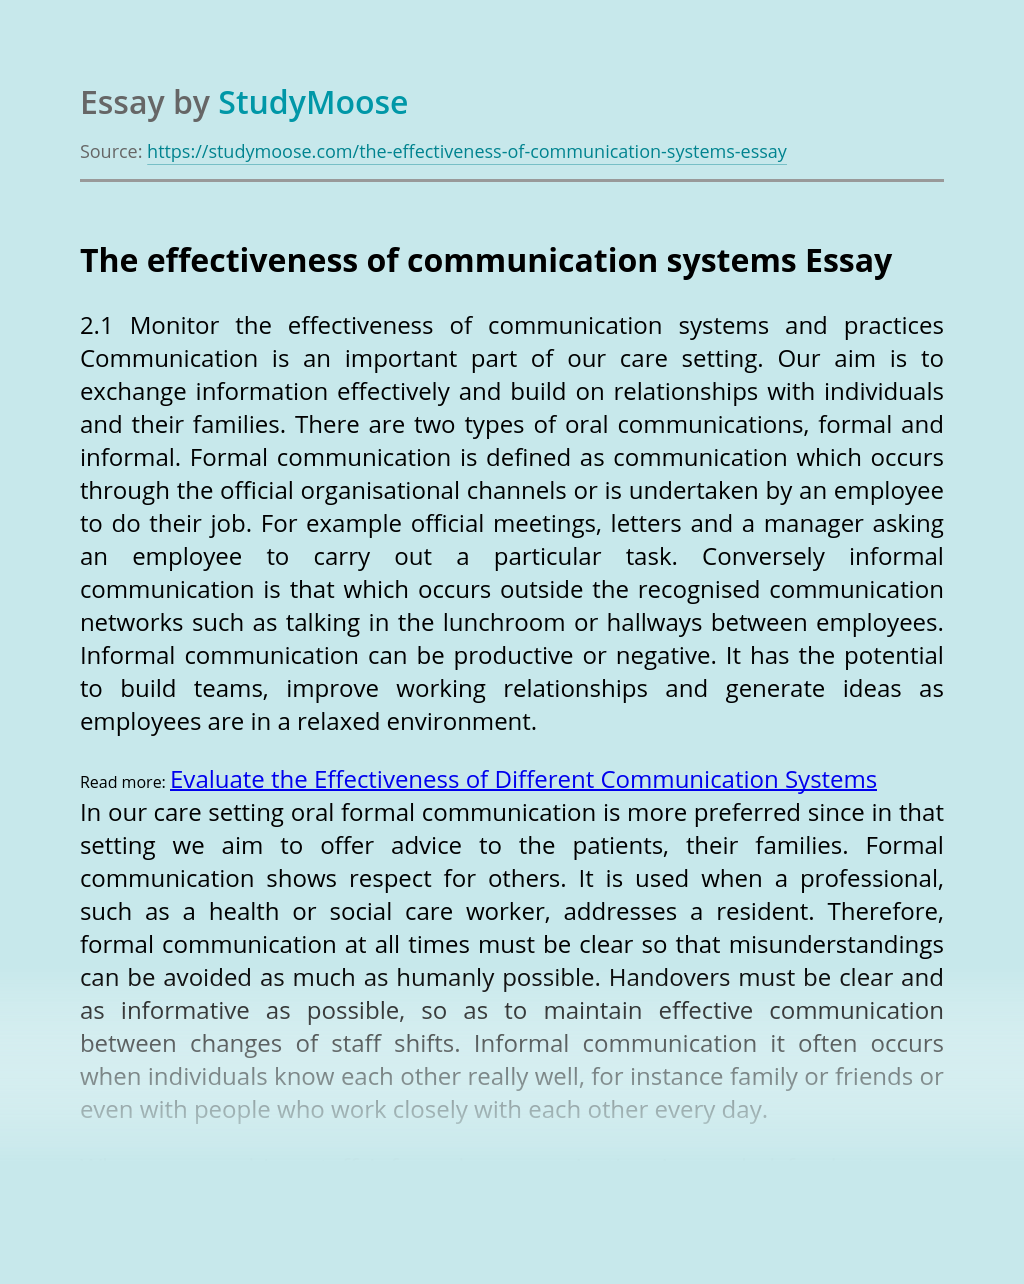 The effectiveness of communication systems